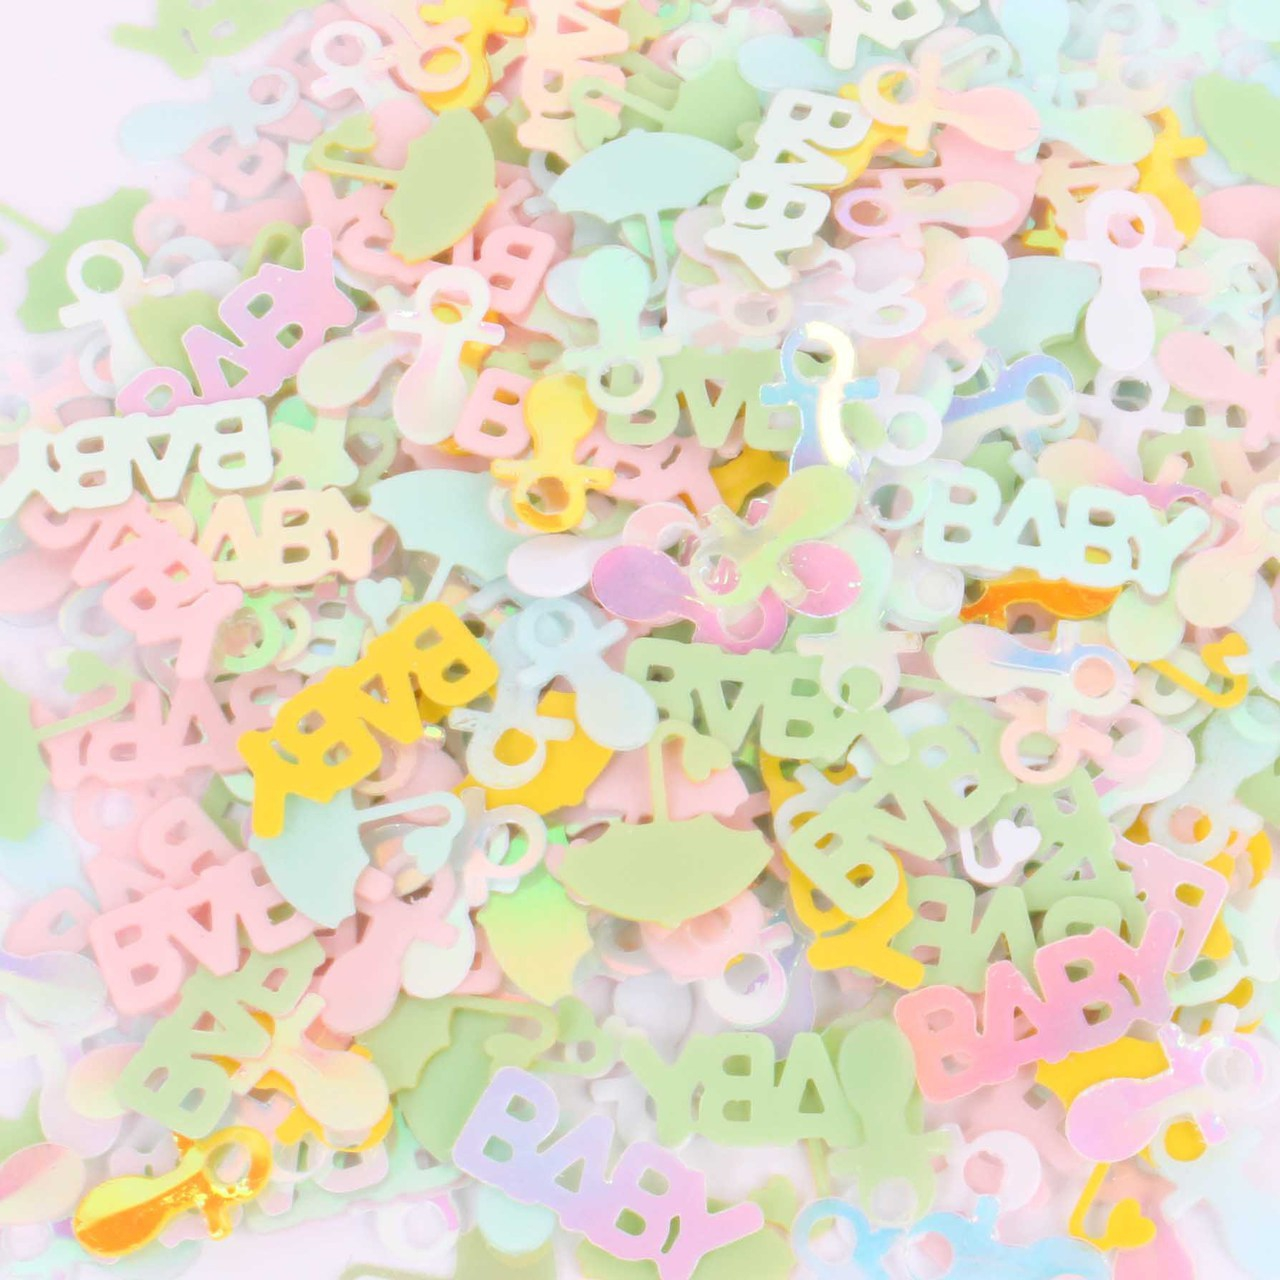 baby shower banners baby shower balloons baby shower centerpieces baby